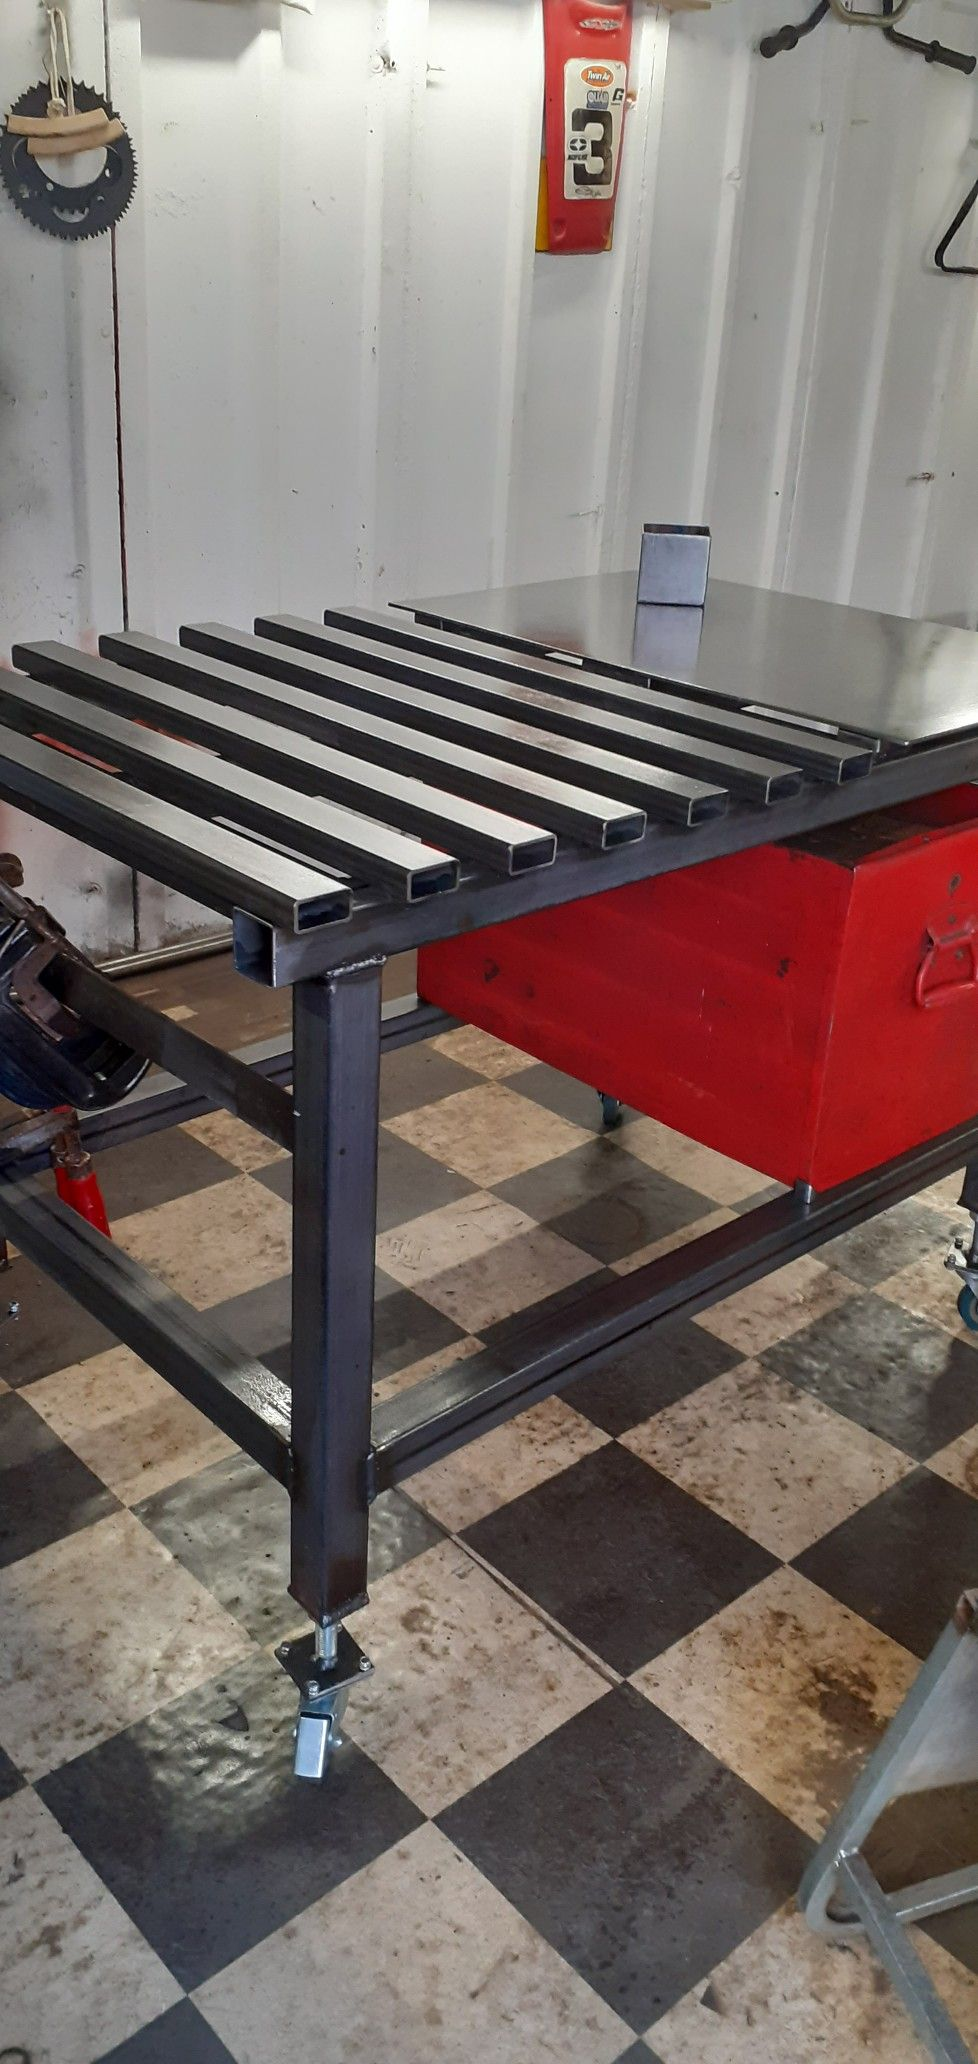 Pin on welding table plans ideas diy welding table top